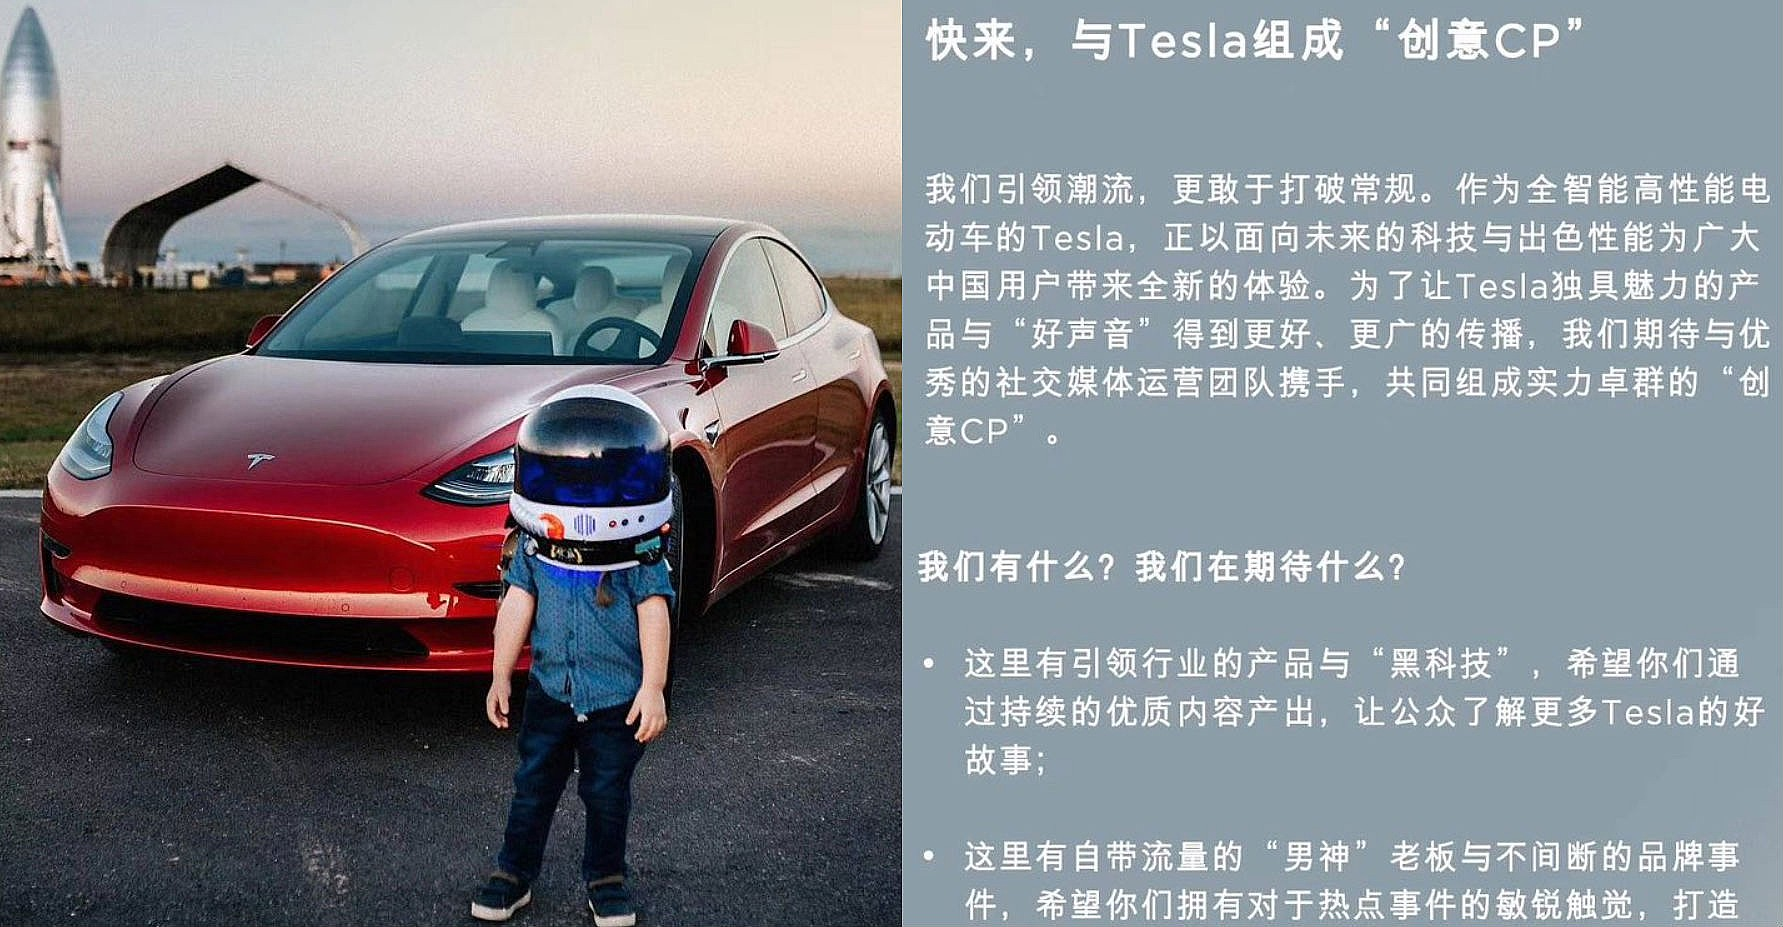 tesla-china-social-media-team-1